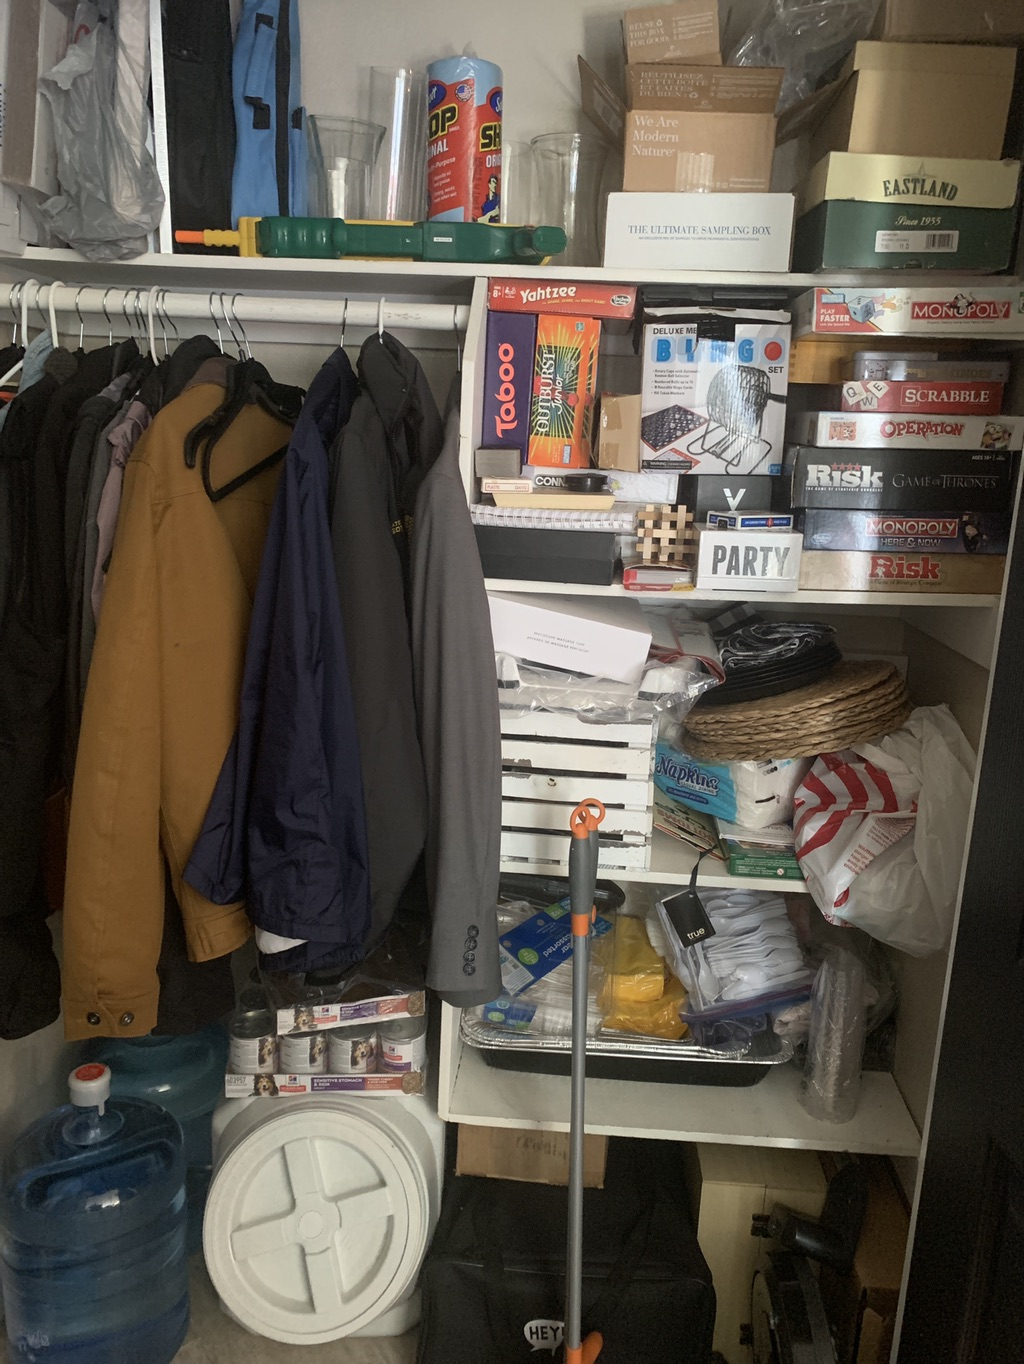 hall closet cluttered with jackets, board games, cleaning supplies, catering supplies, shipping boxes, etc.